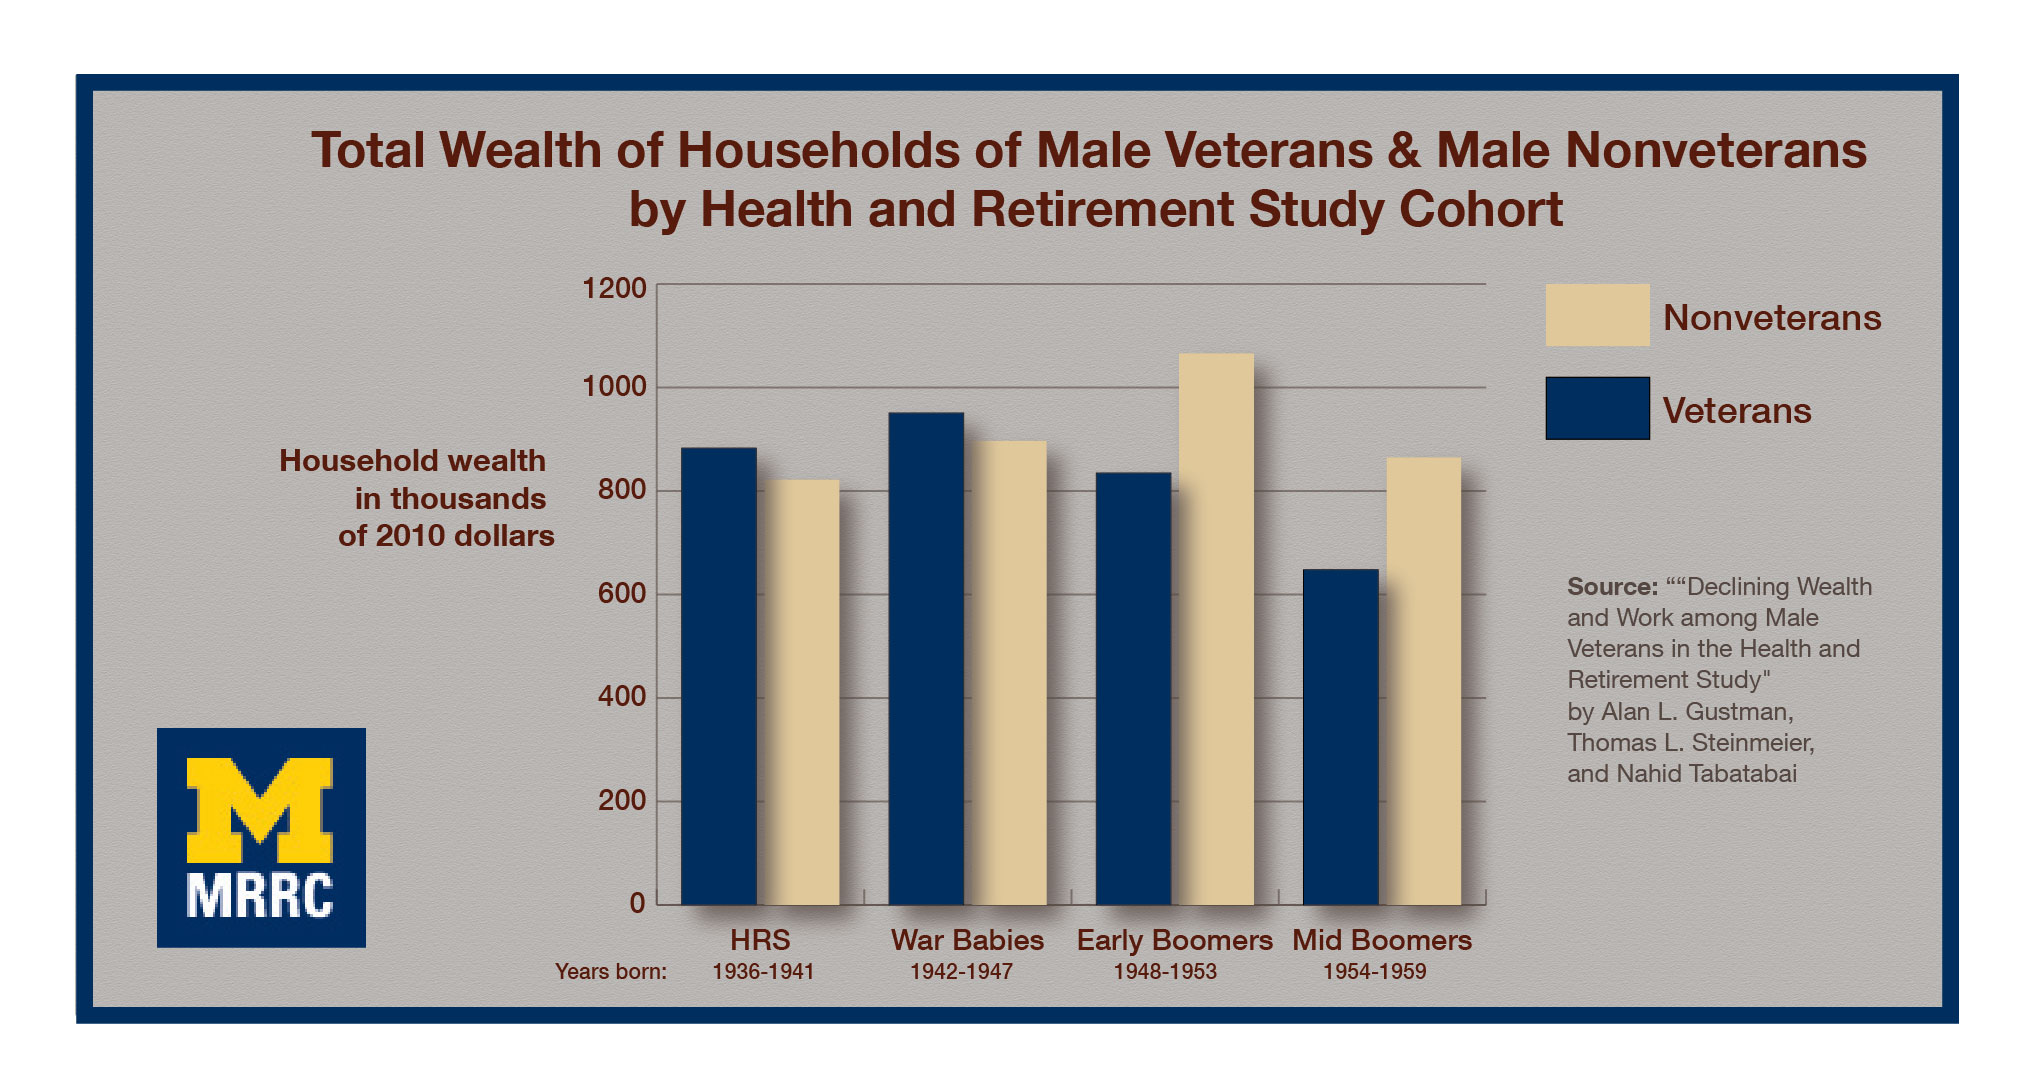 Welfare Of U.S. Vets Has Declined Over Time, Researchers Find